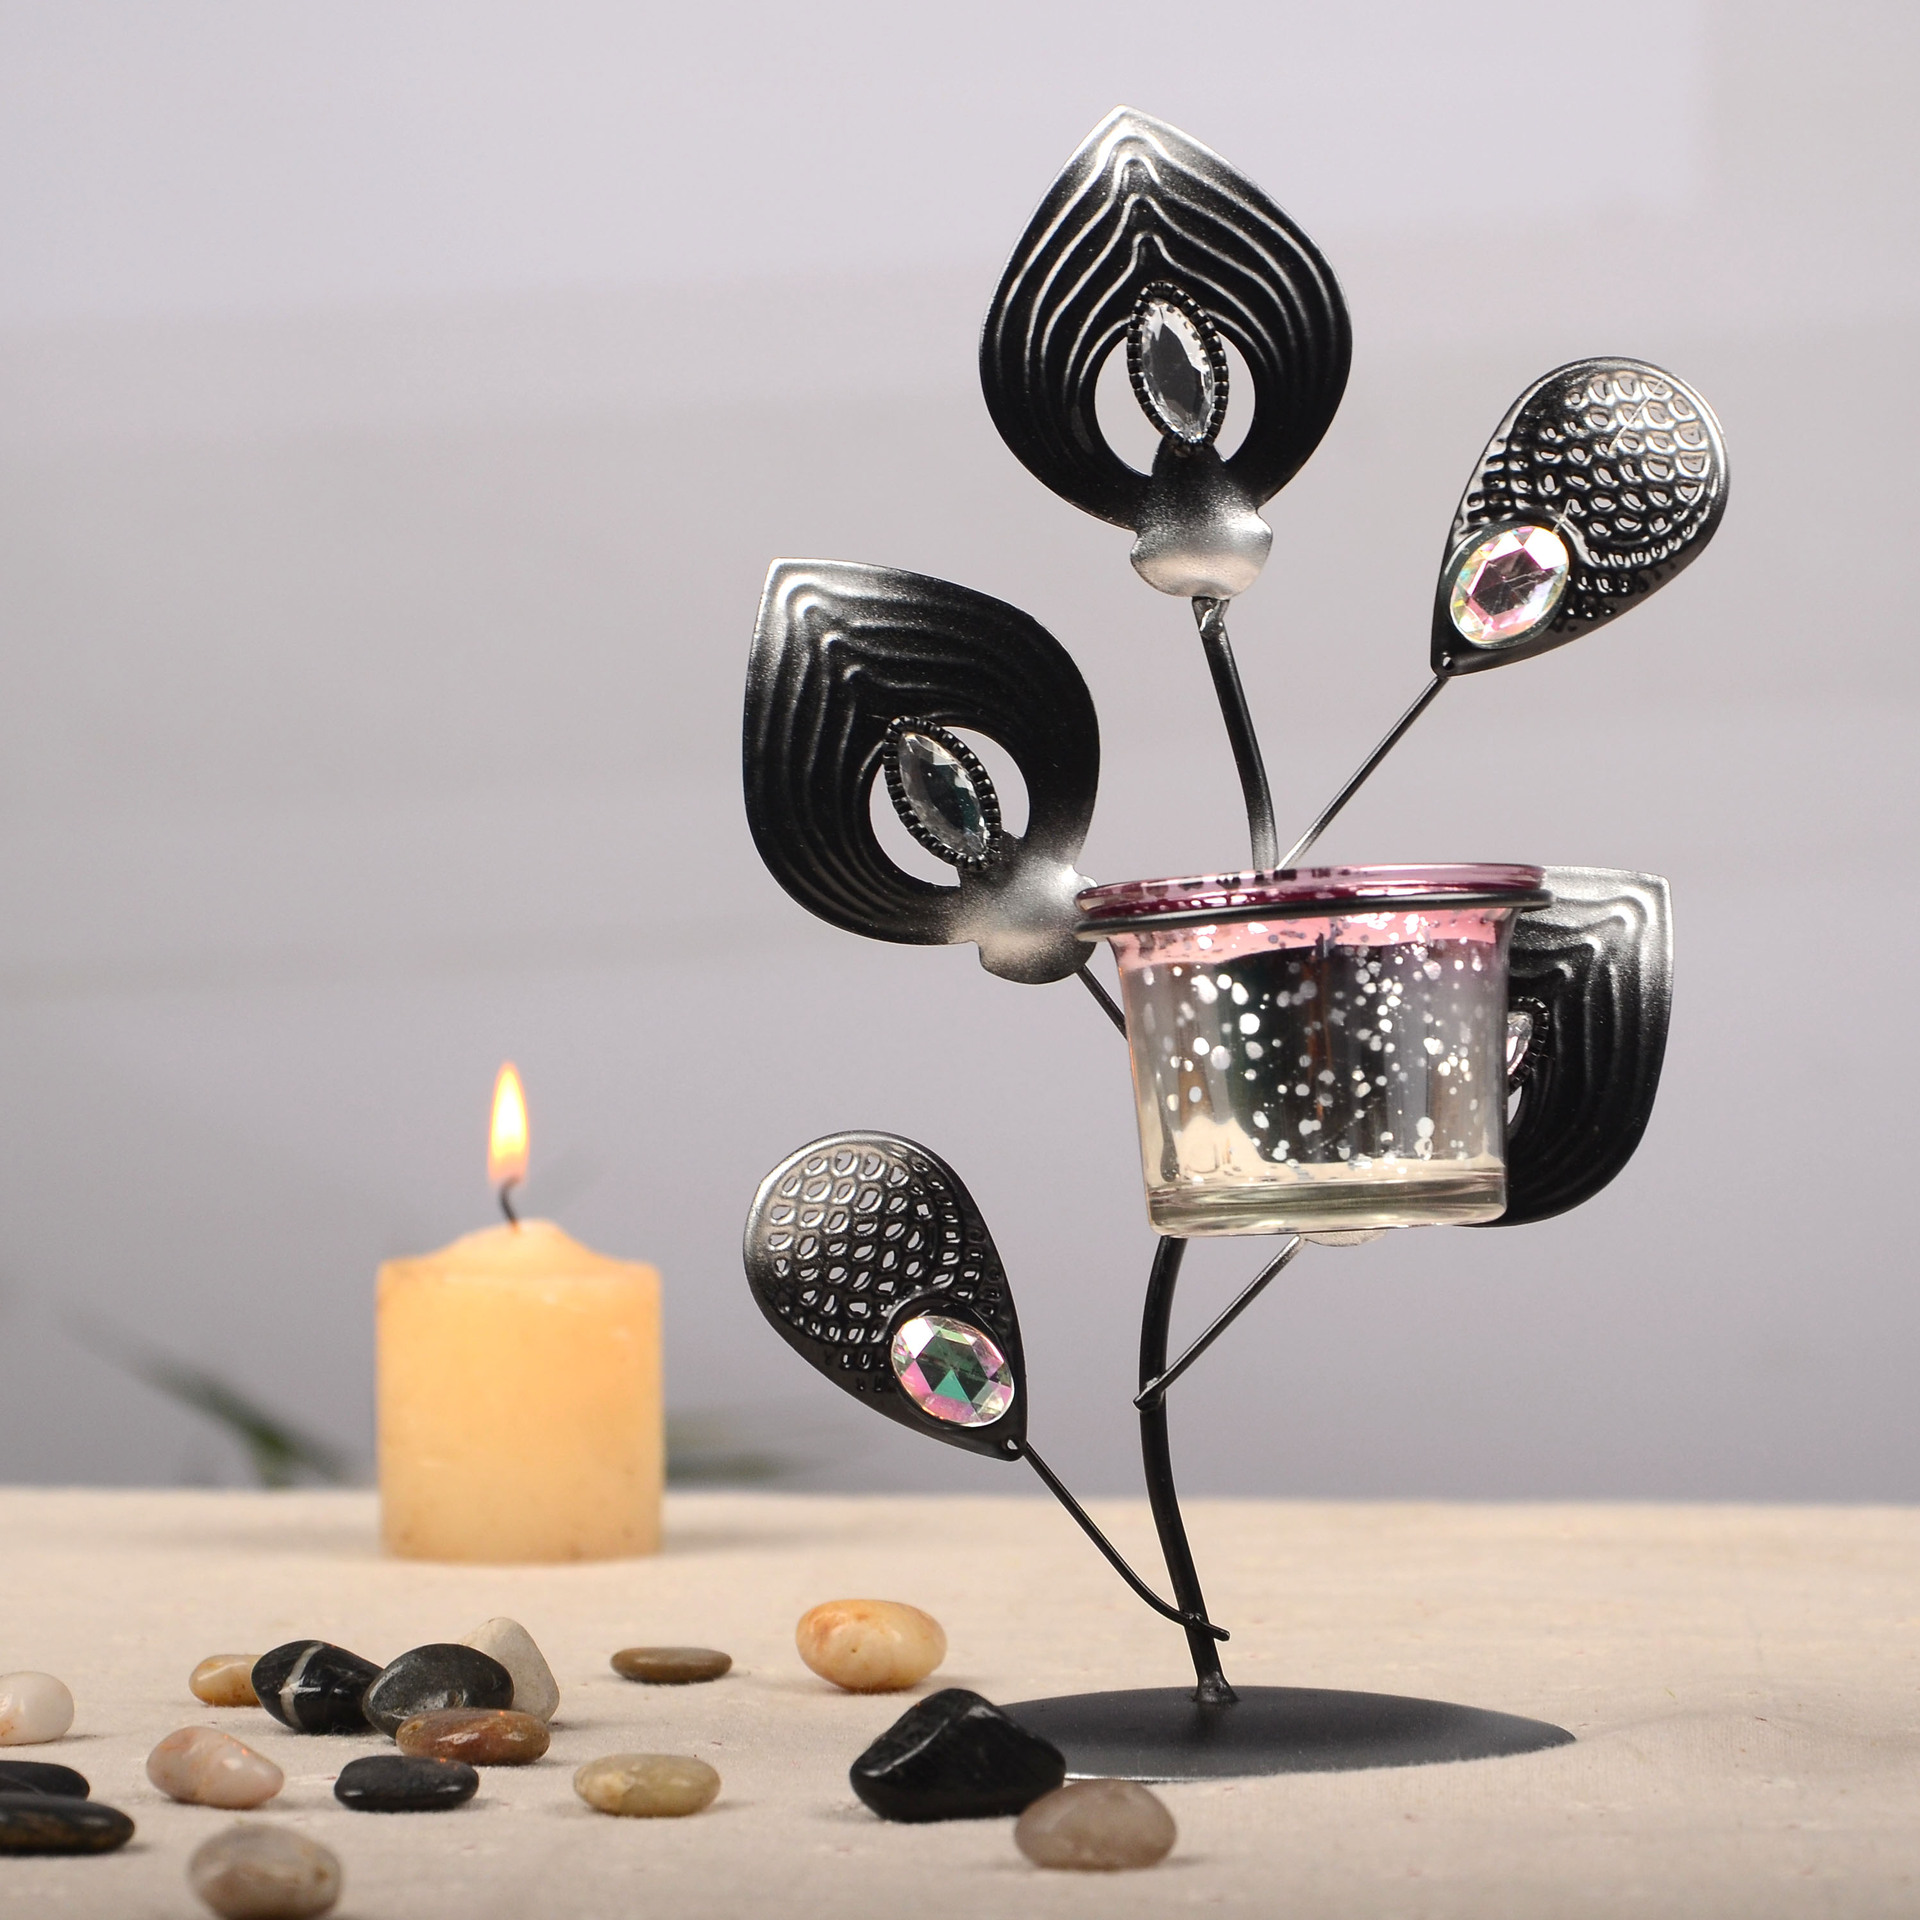 Zakka grocery classic black iron ornaments peacock Candle wedding gifts BF04(China (Mainland))